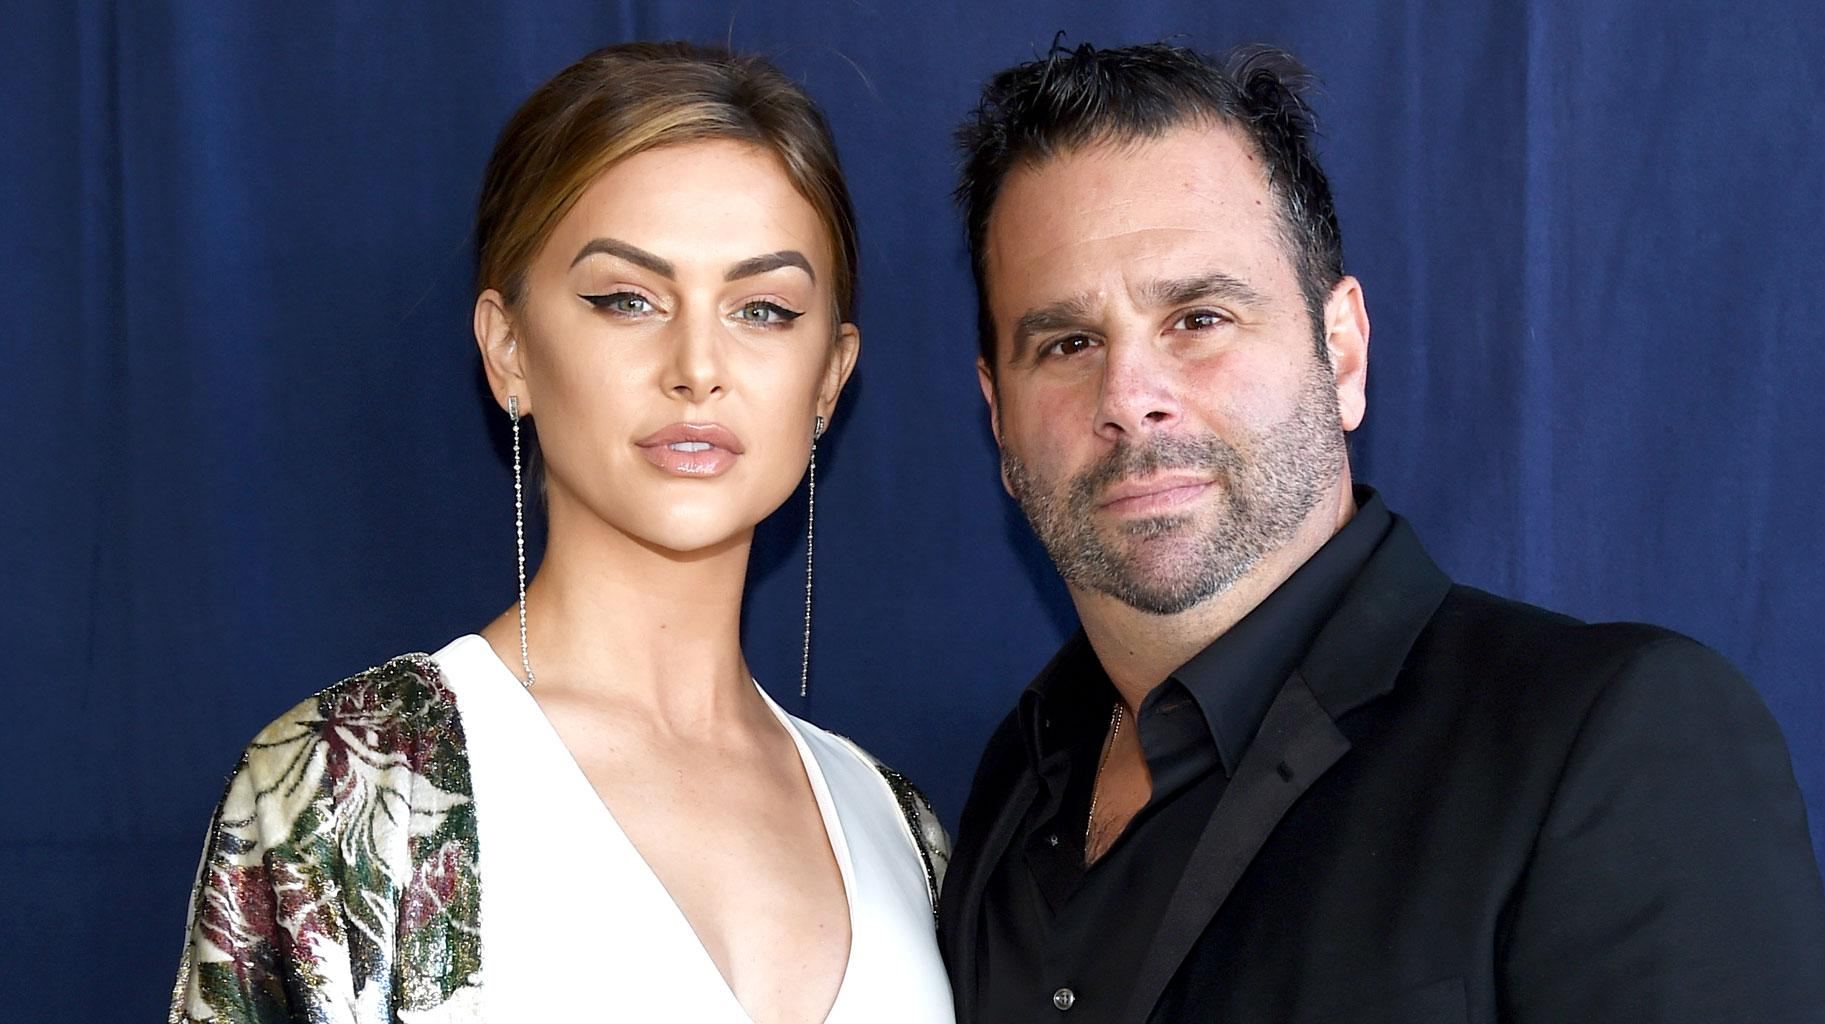 In A Shocking Turn Of Events, Lala Kent And Randall Emmett Praise 50 Cent